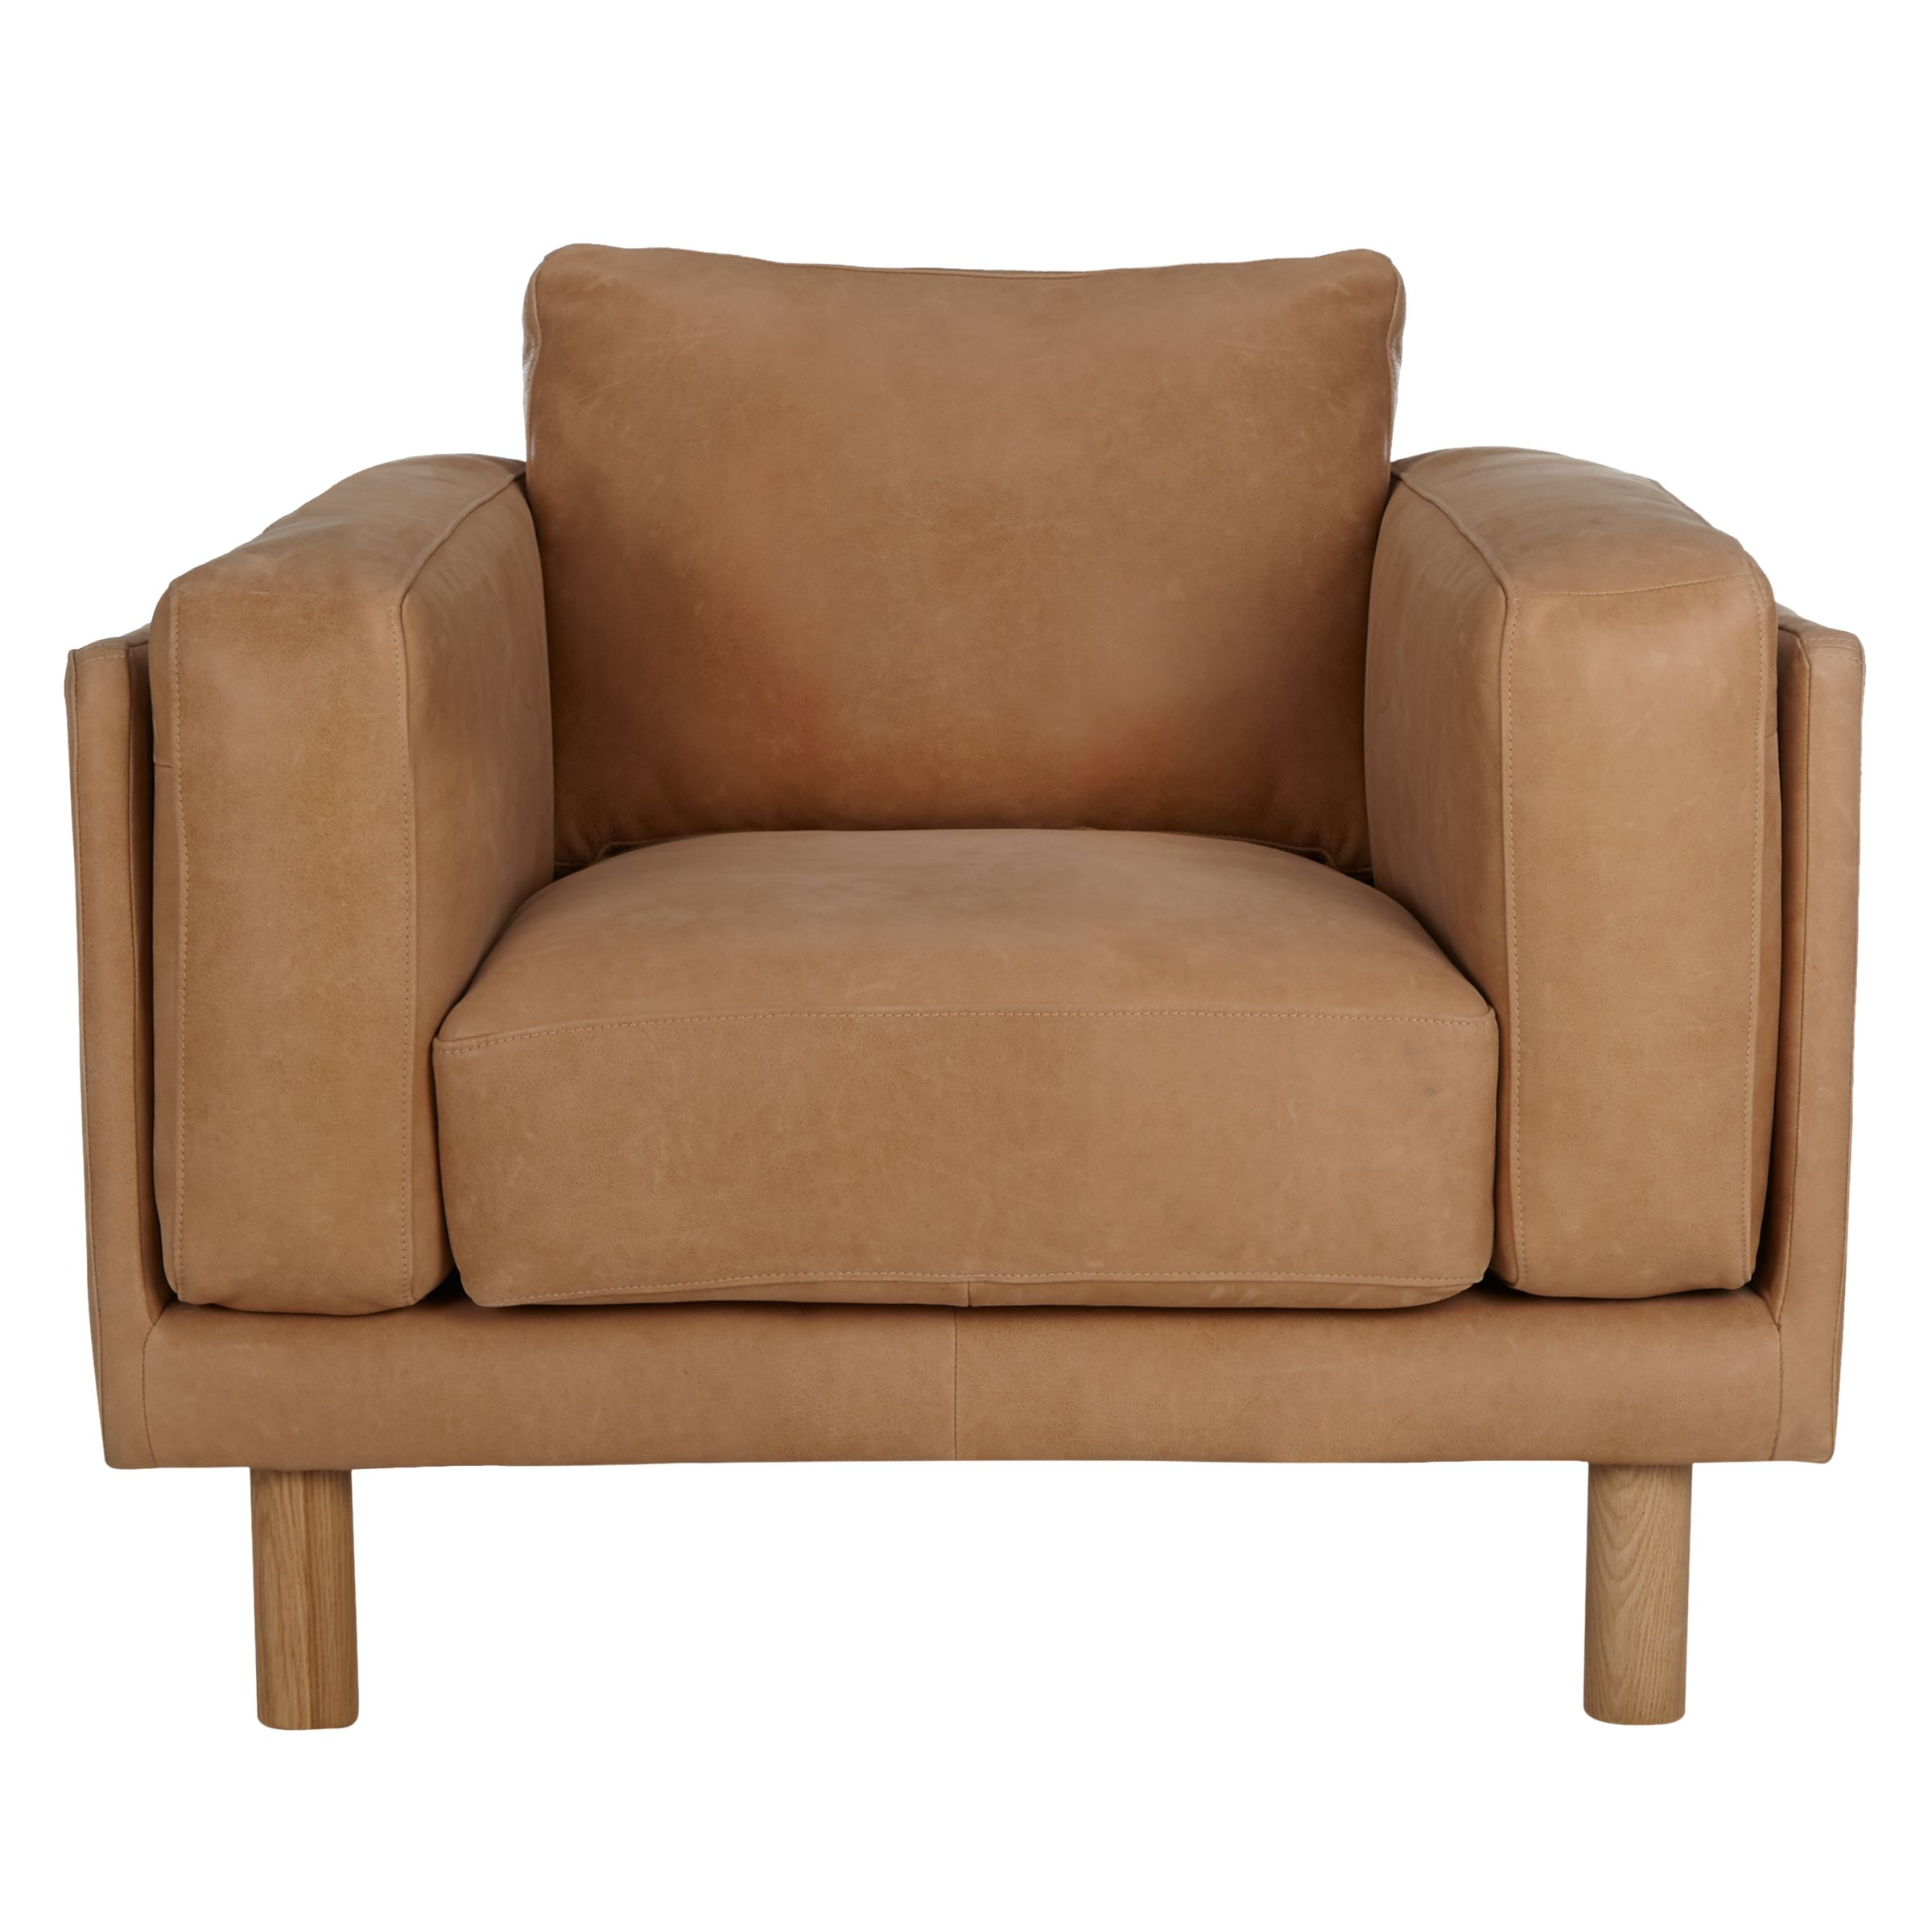 Buy Design Project by John Lewis No002 Leather Armchair John Lewis